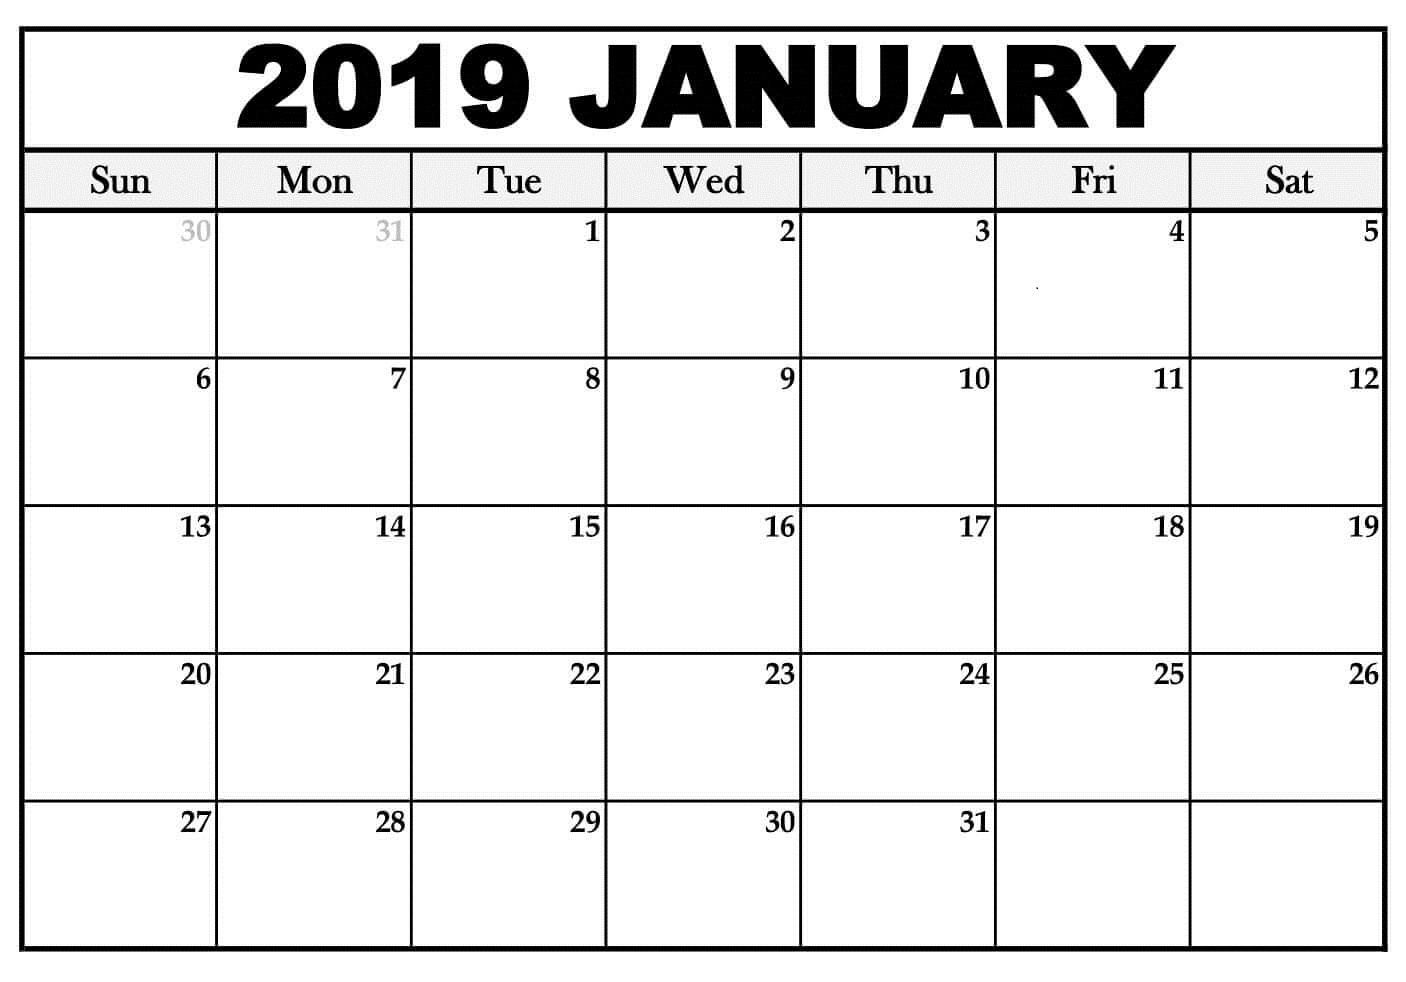 January 2019 Calendar Word Template Editable